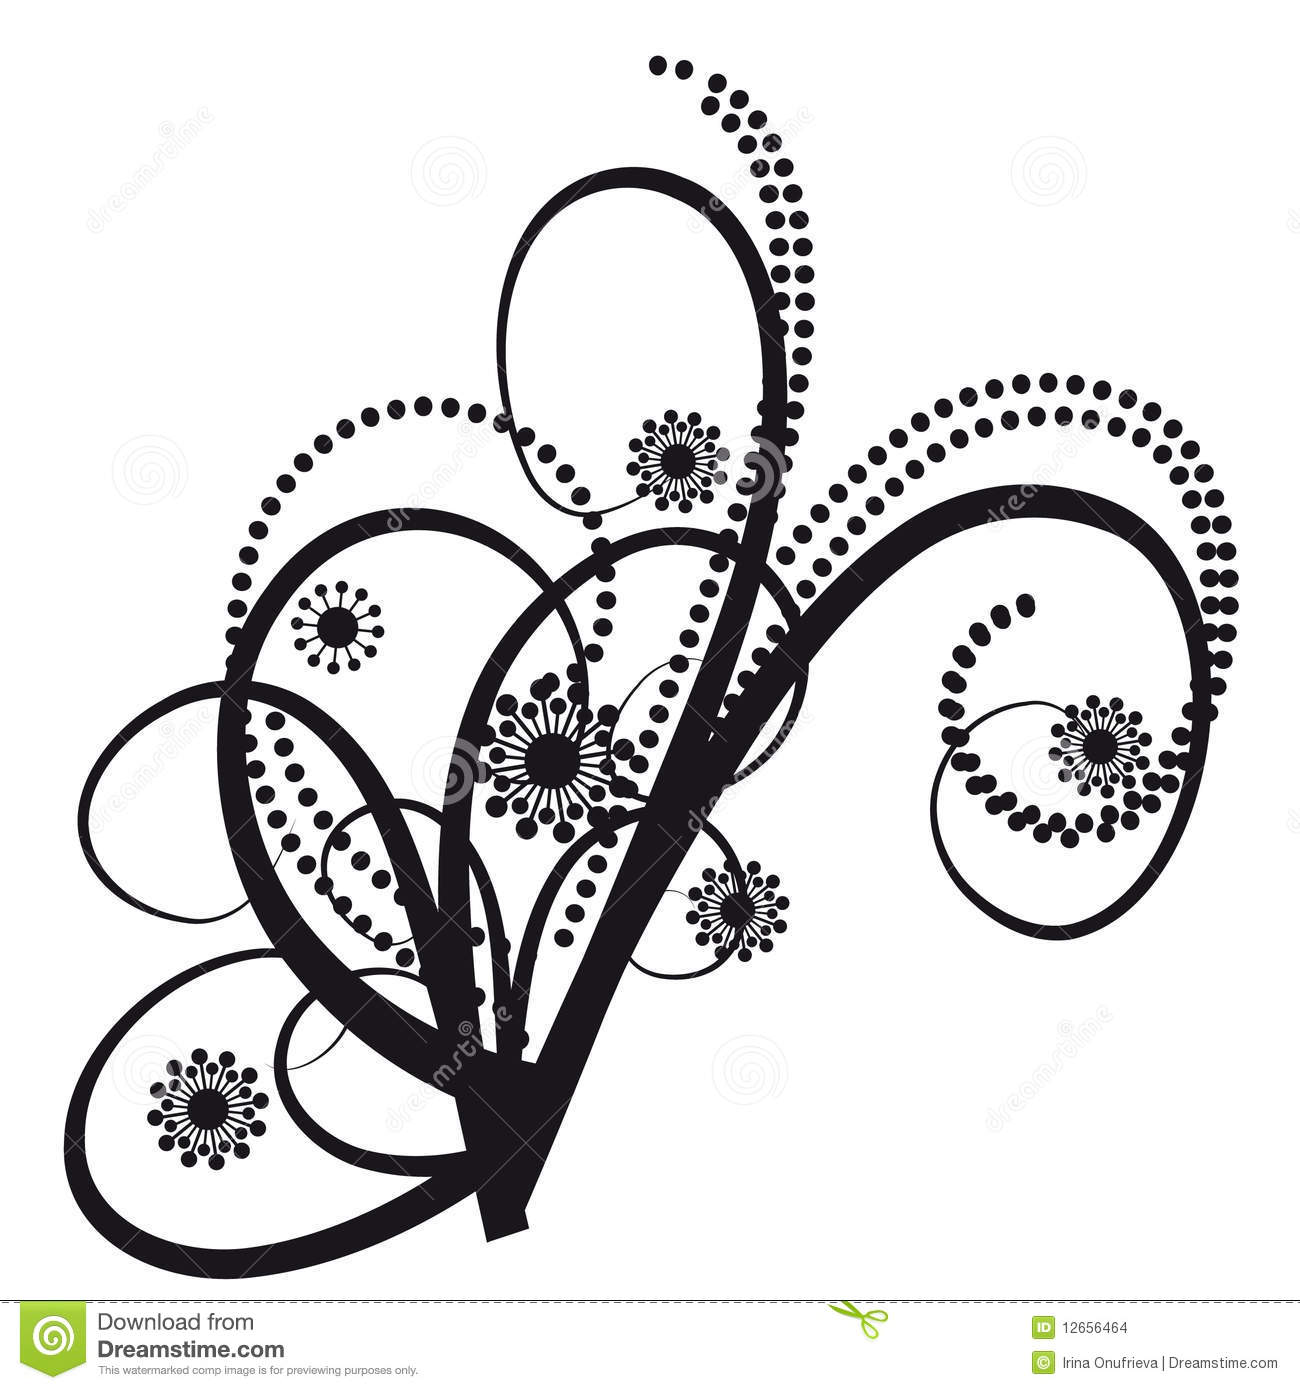 Tattoos In The Form Of An Abstract Bouquet  Vector Illustration